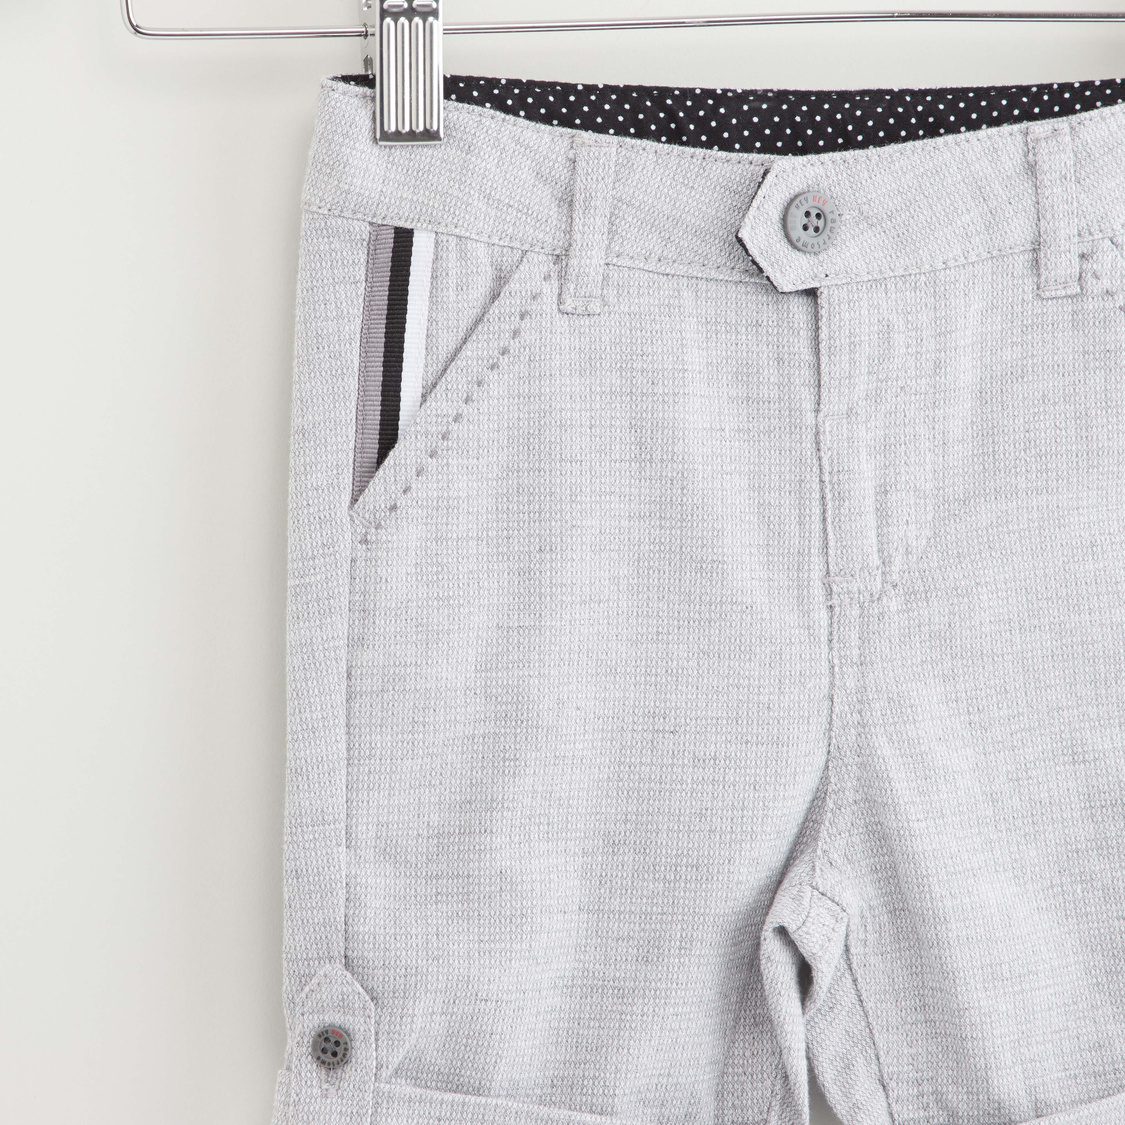 Textured Shorts with Pockets and Button Closure